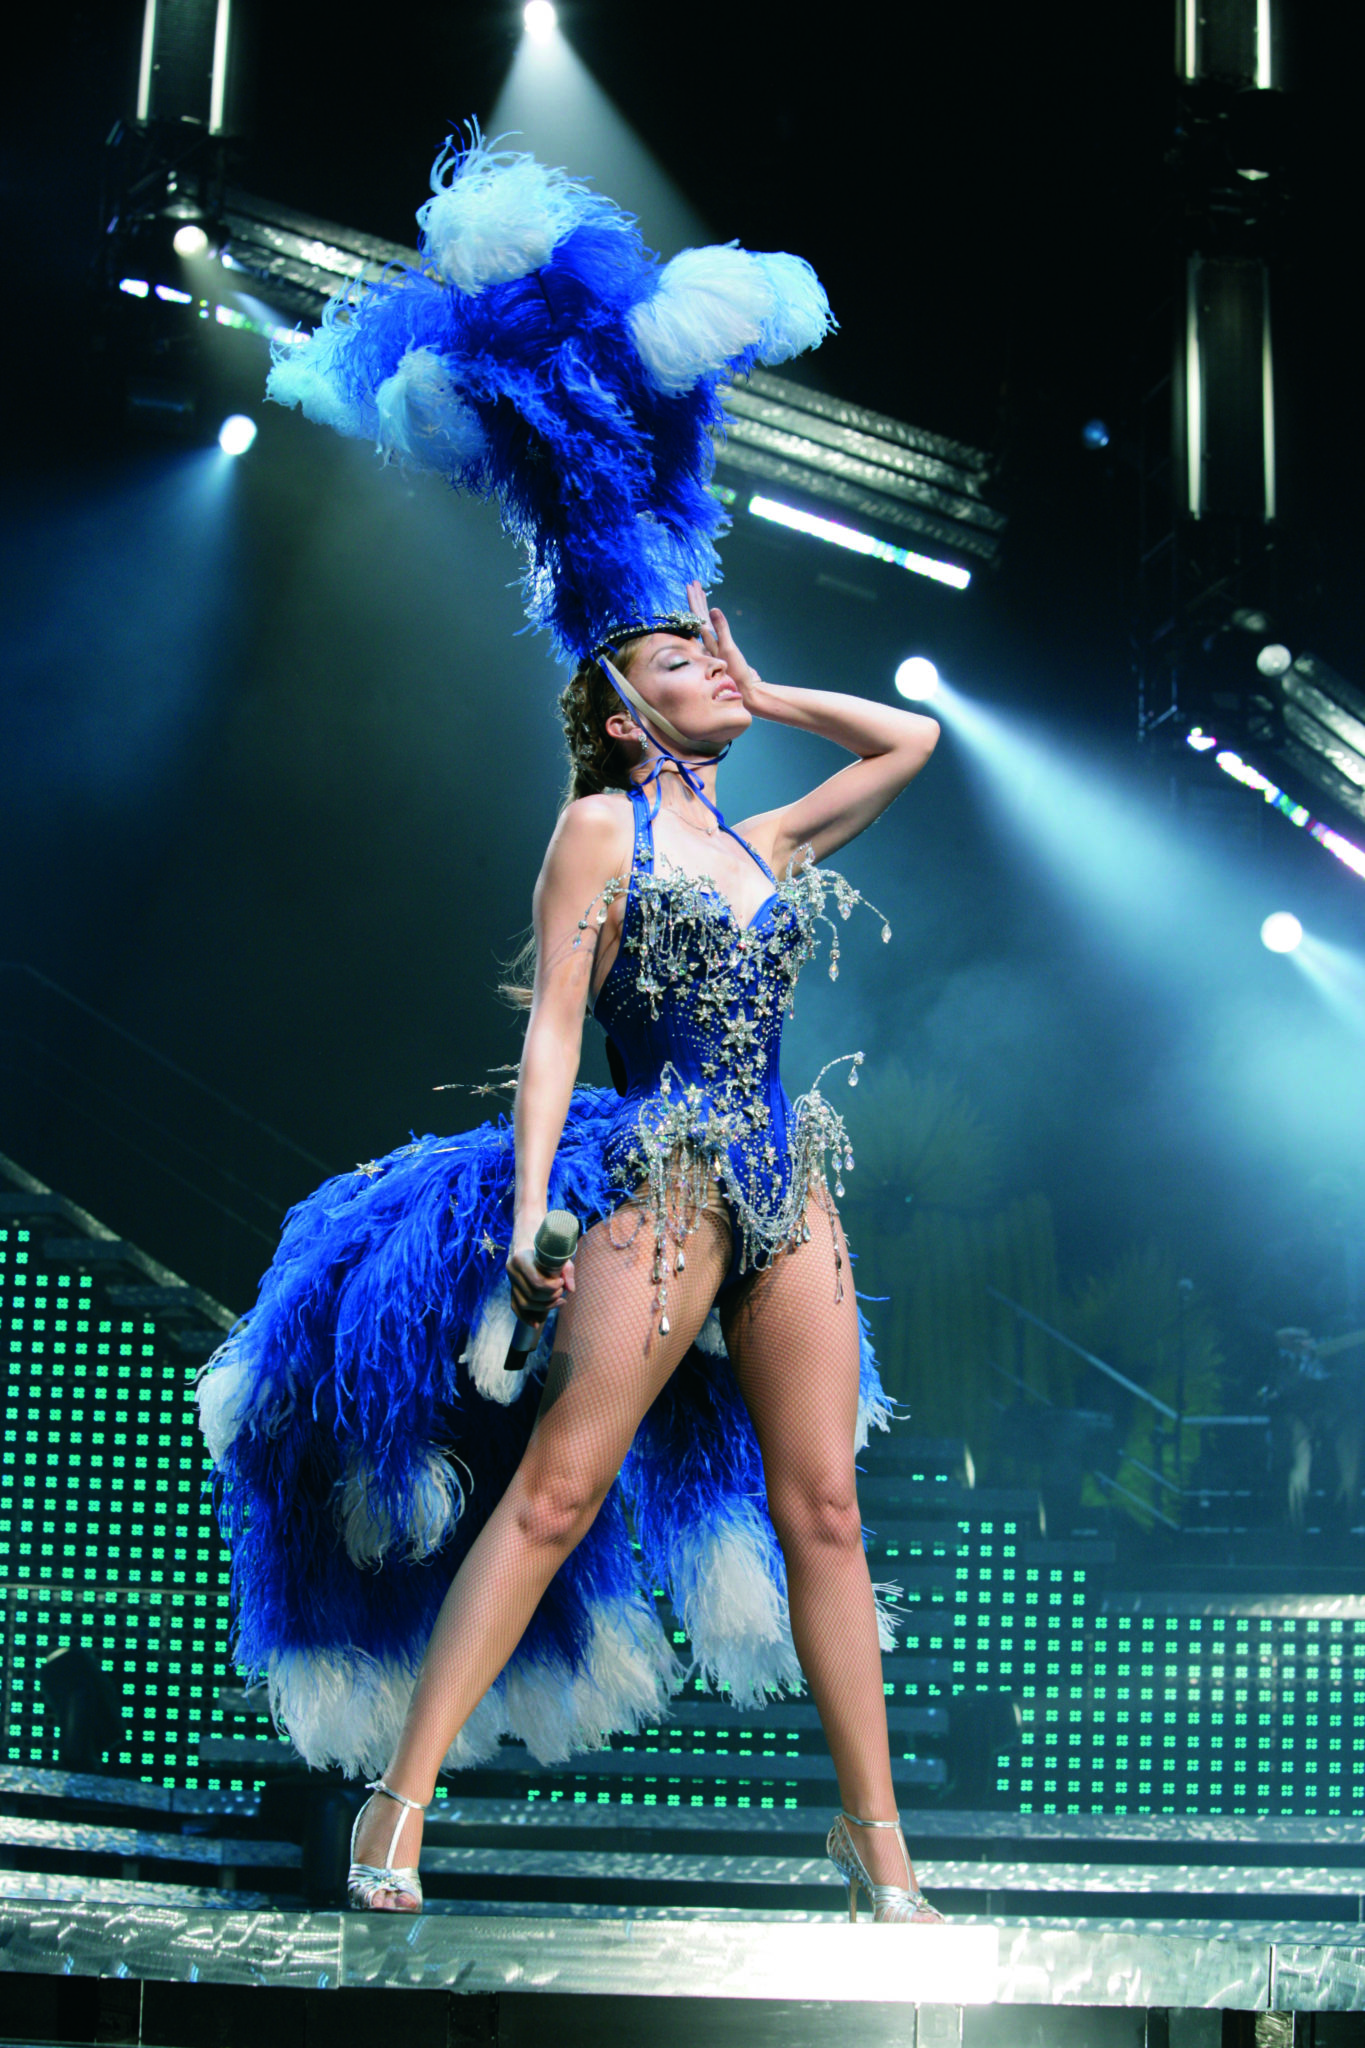 Kylie Minogue, Kylie Showgirl: The Greatest Hits tour, 2005. Photograph by Ken McKay. Reproduced courtesy of Darenote Ltd.